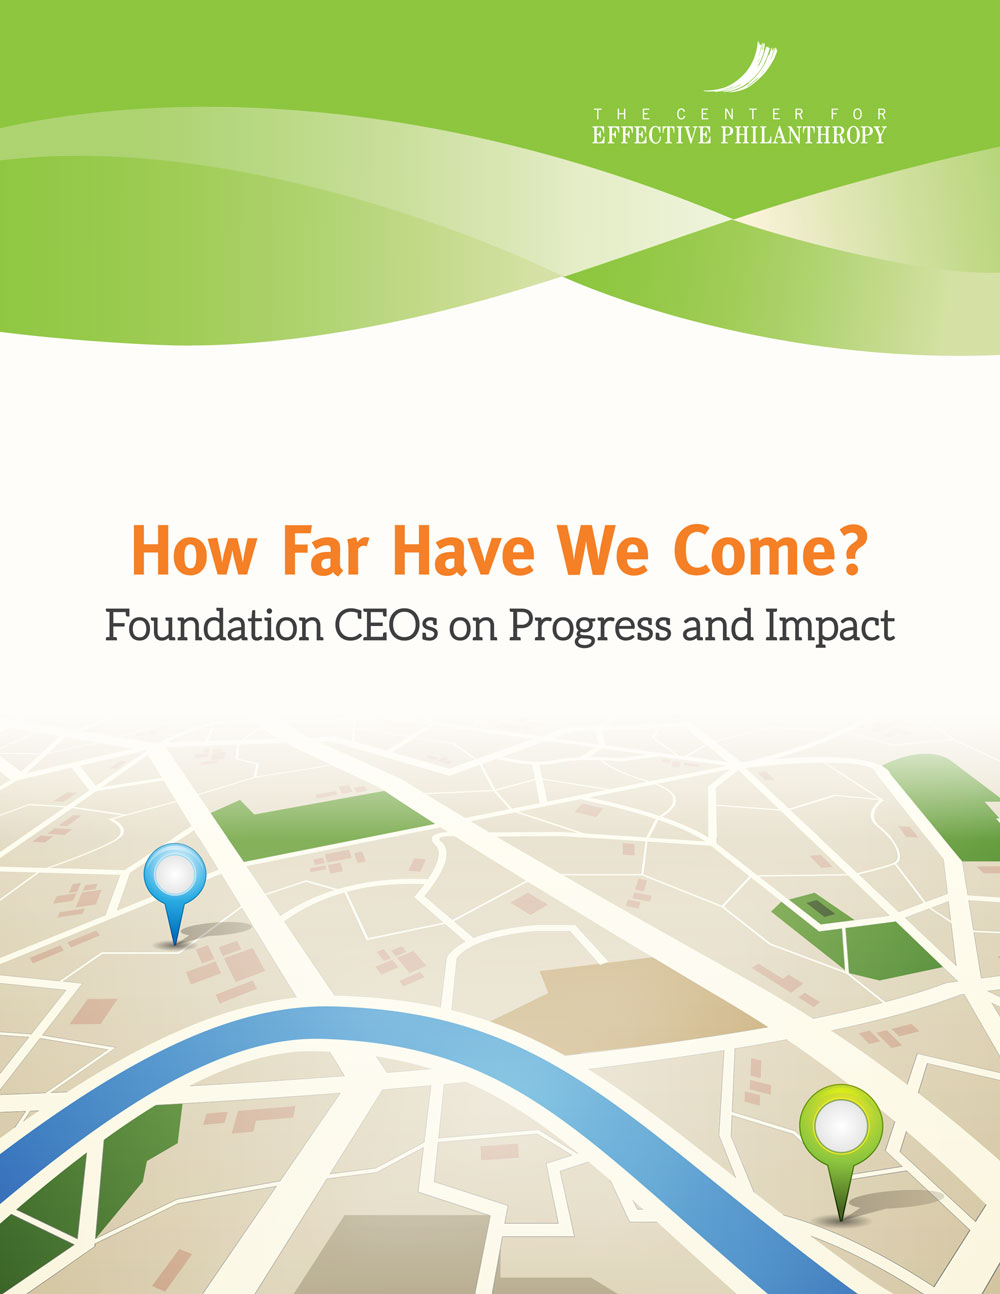 How Far Have We Come? Foundation CEOs on Progress and Impact